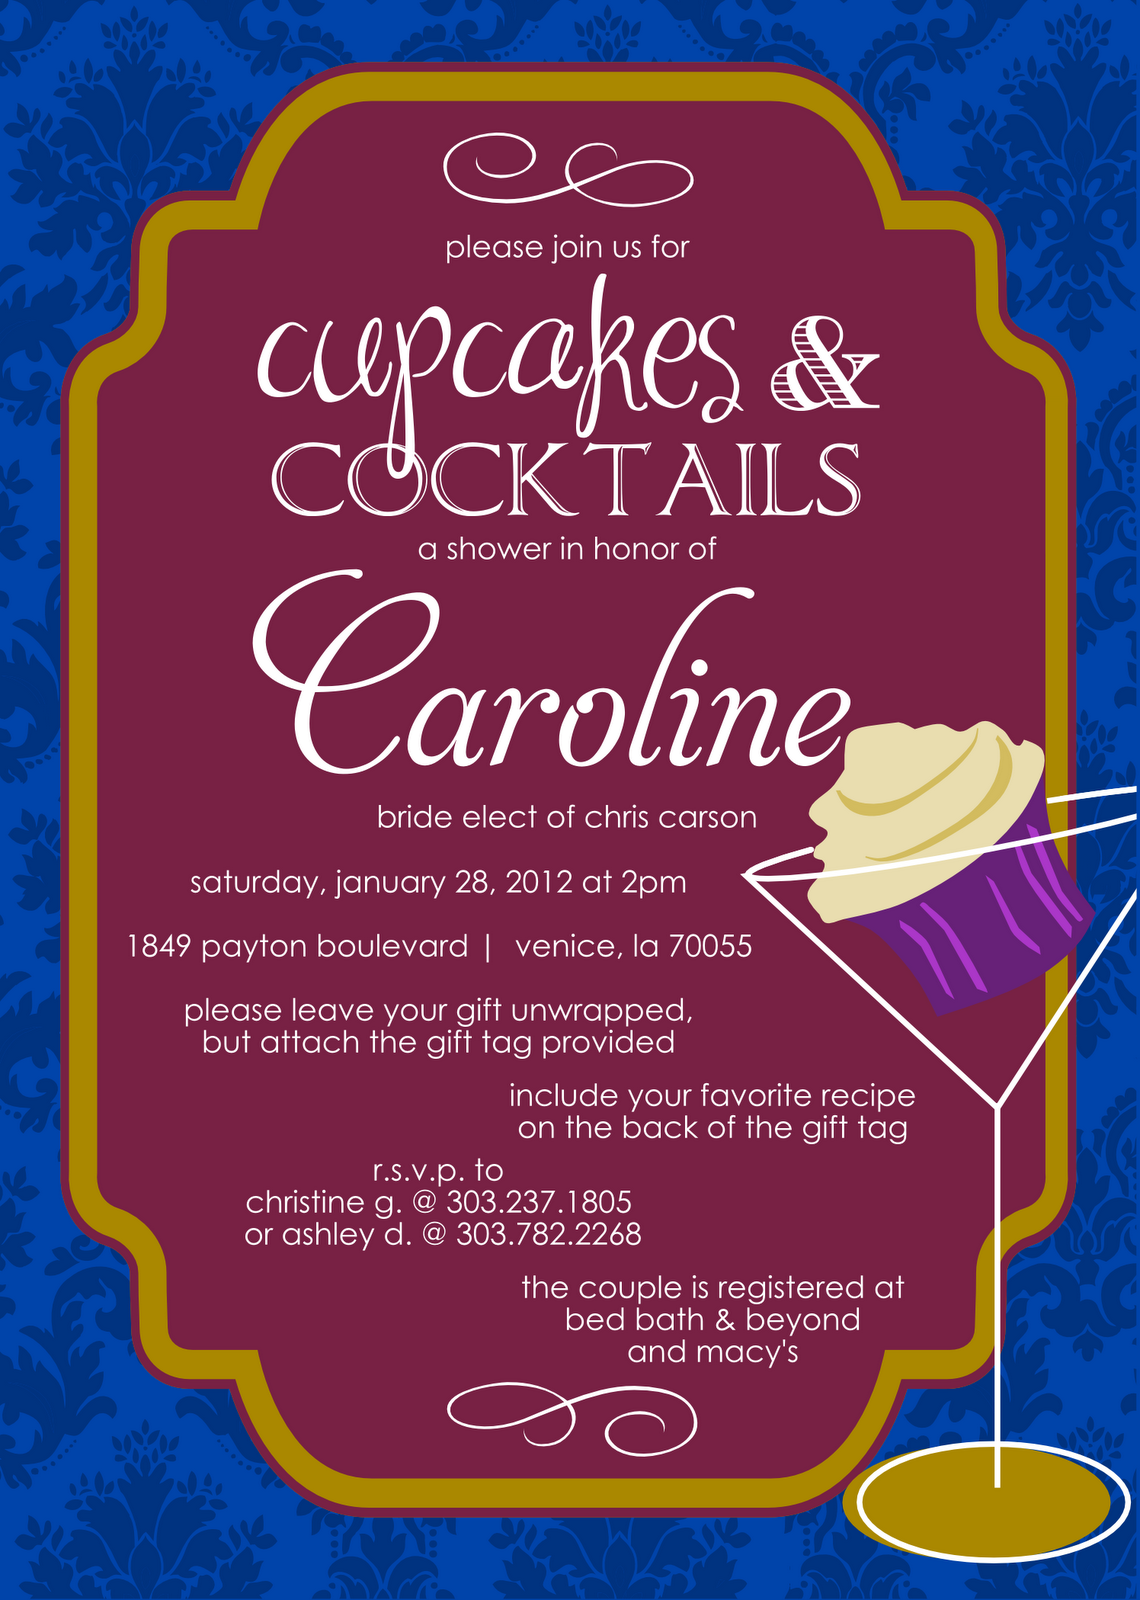 cupcakes and cocktails themed bridal shower invitation